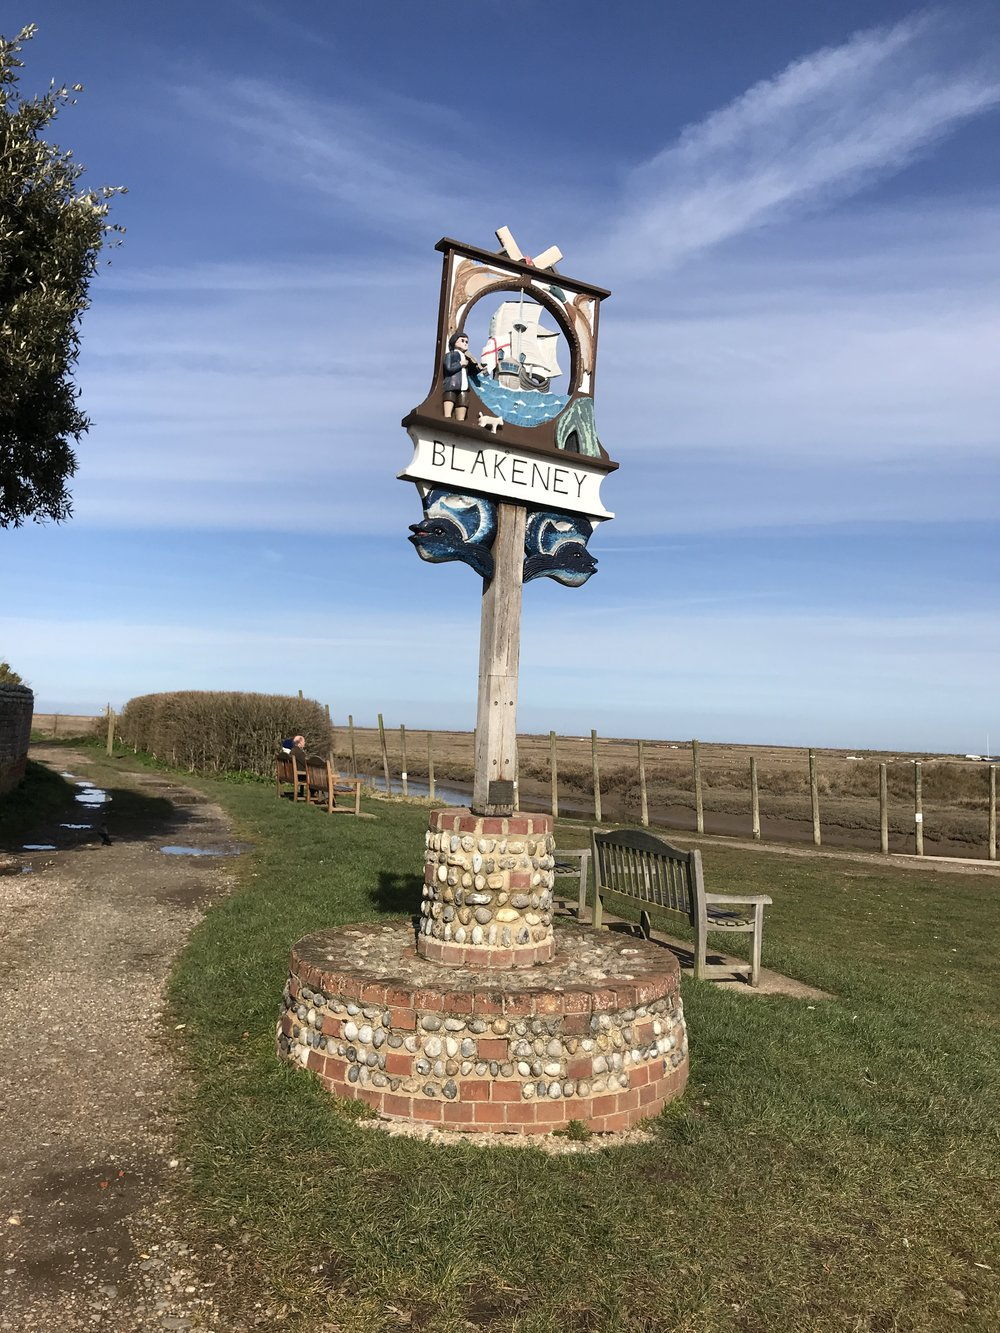 walk-Blakeney-Morston-coast-path